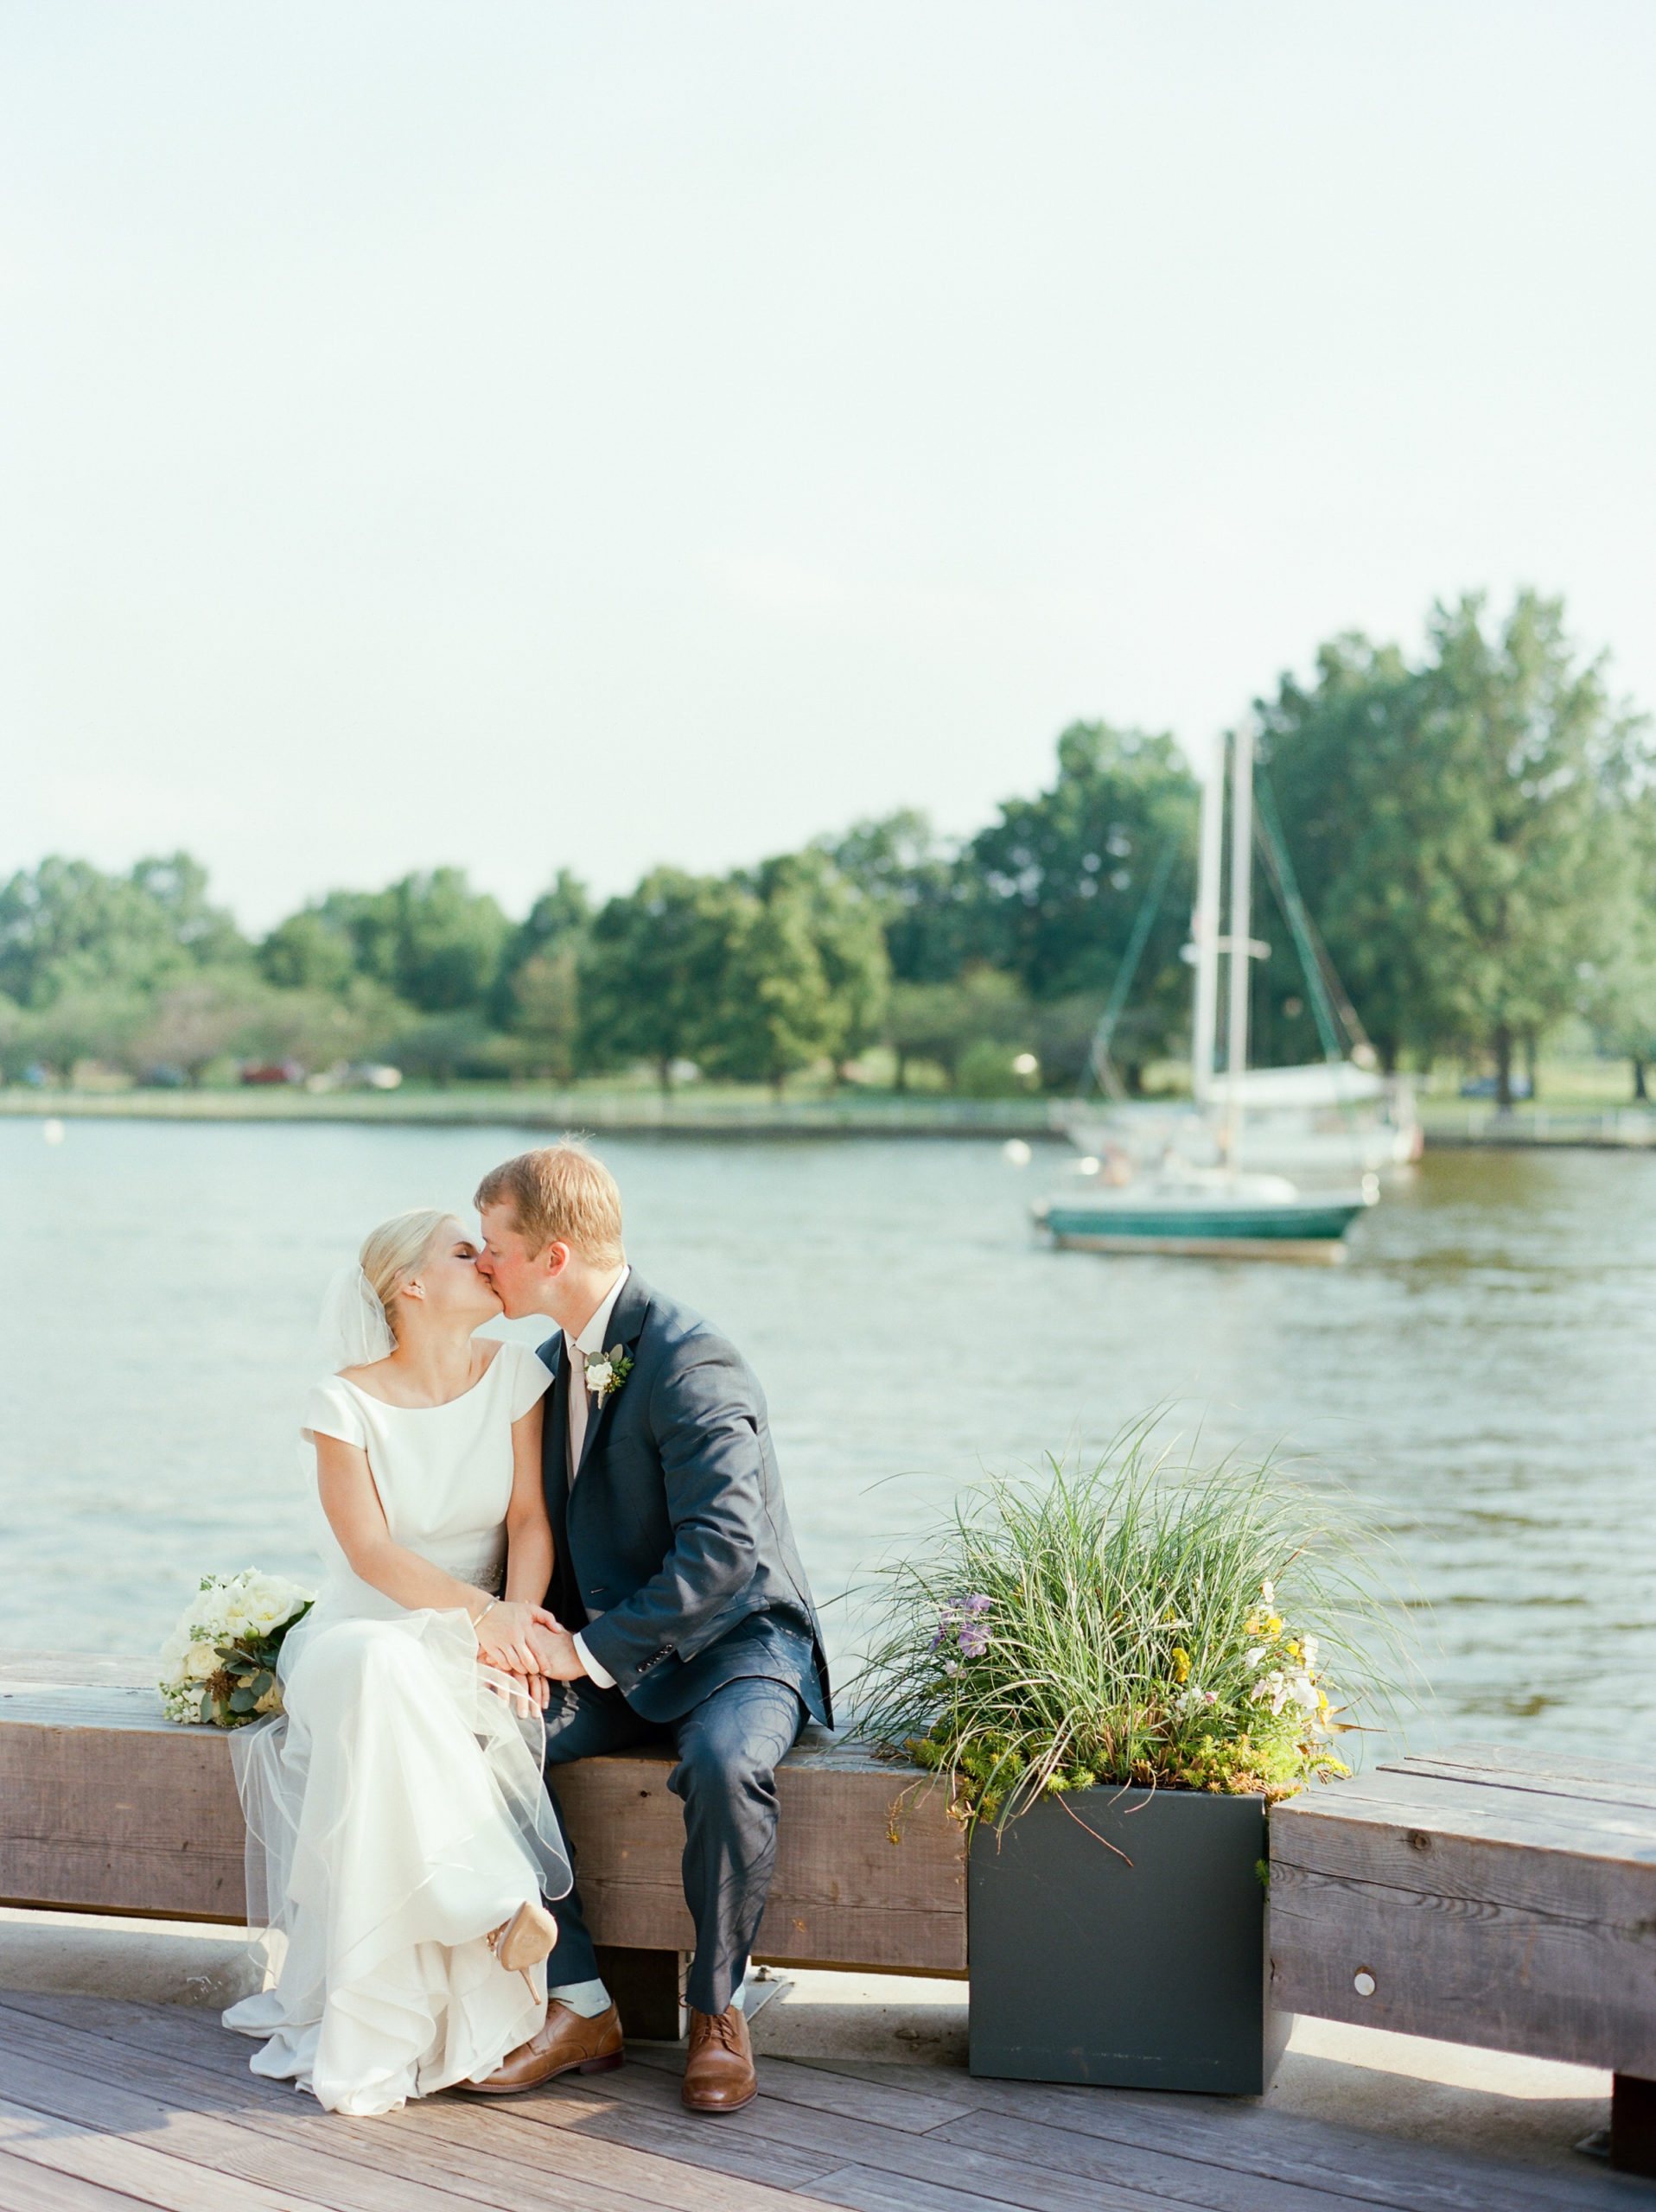 53Chesney_Travis_Intercontinental_Hote_DC_Wharf_Wedding_AstridPhotography134070080016-2